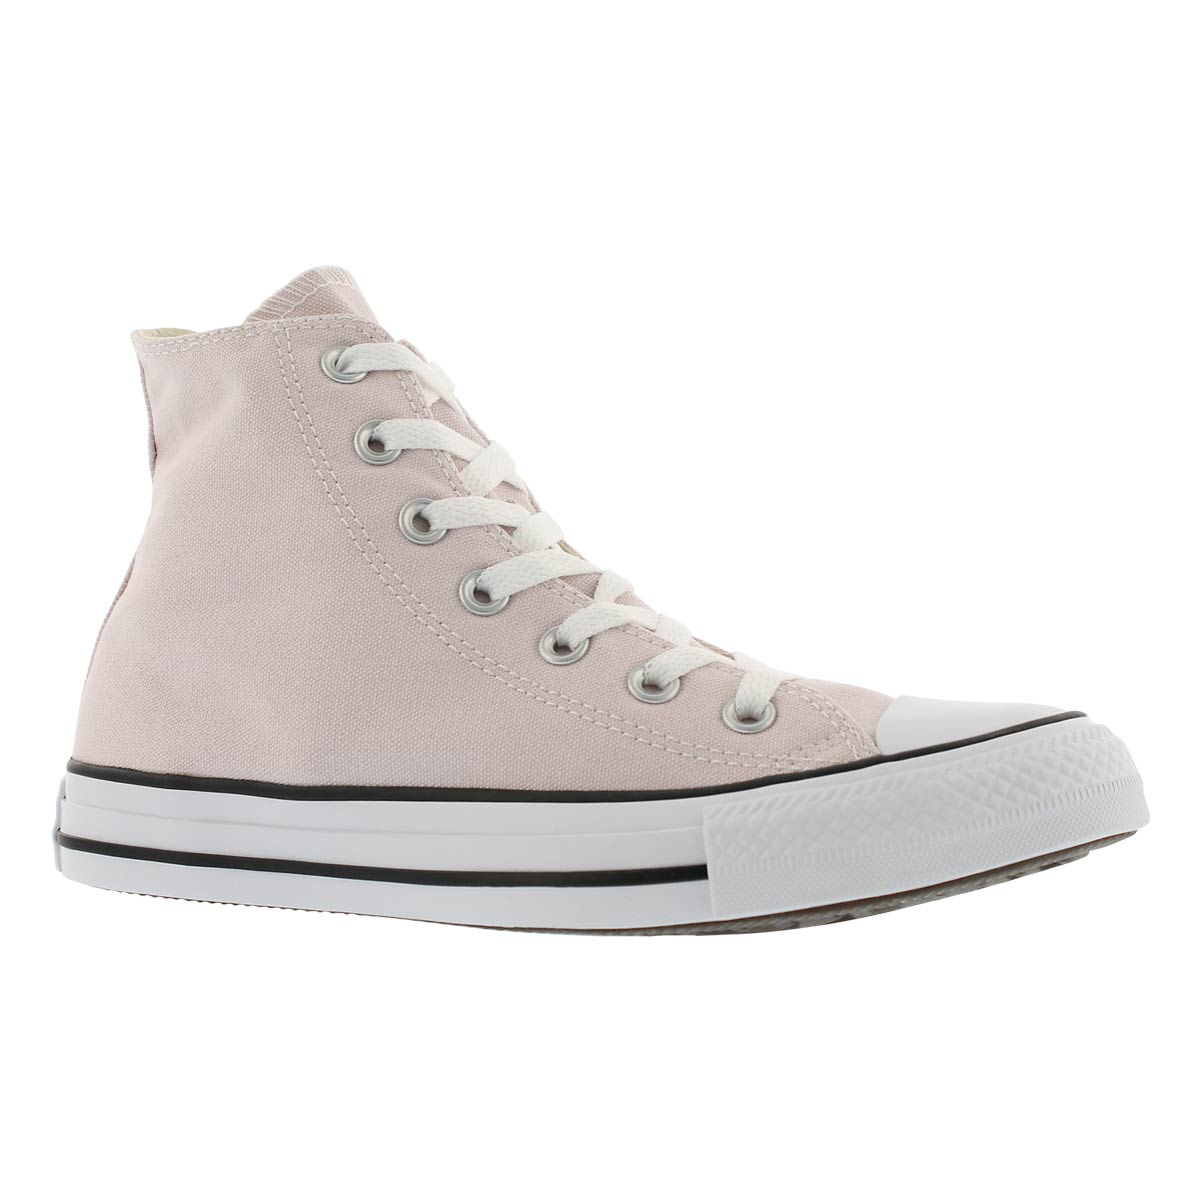 Women's CT ALL STAR SEASONAL barely rose high tops